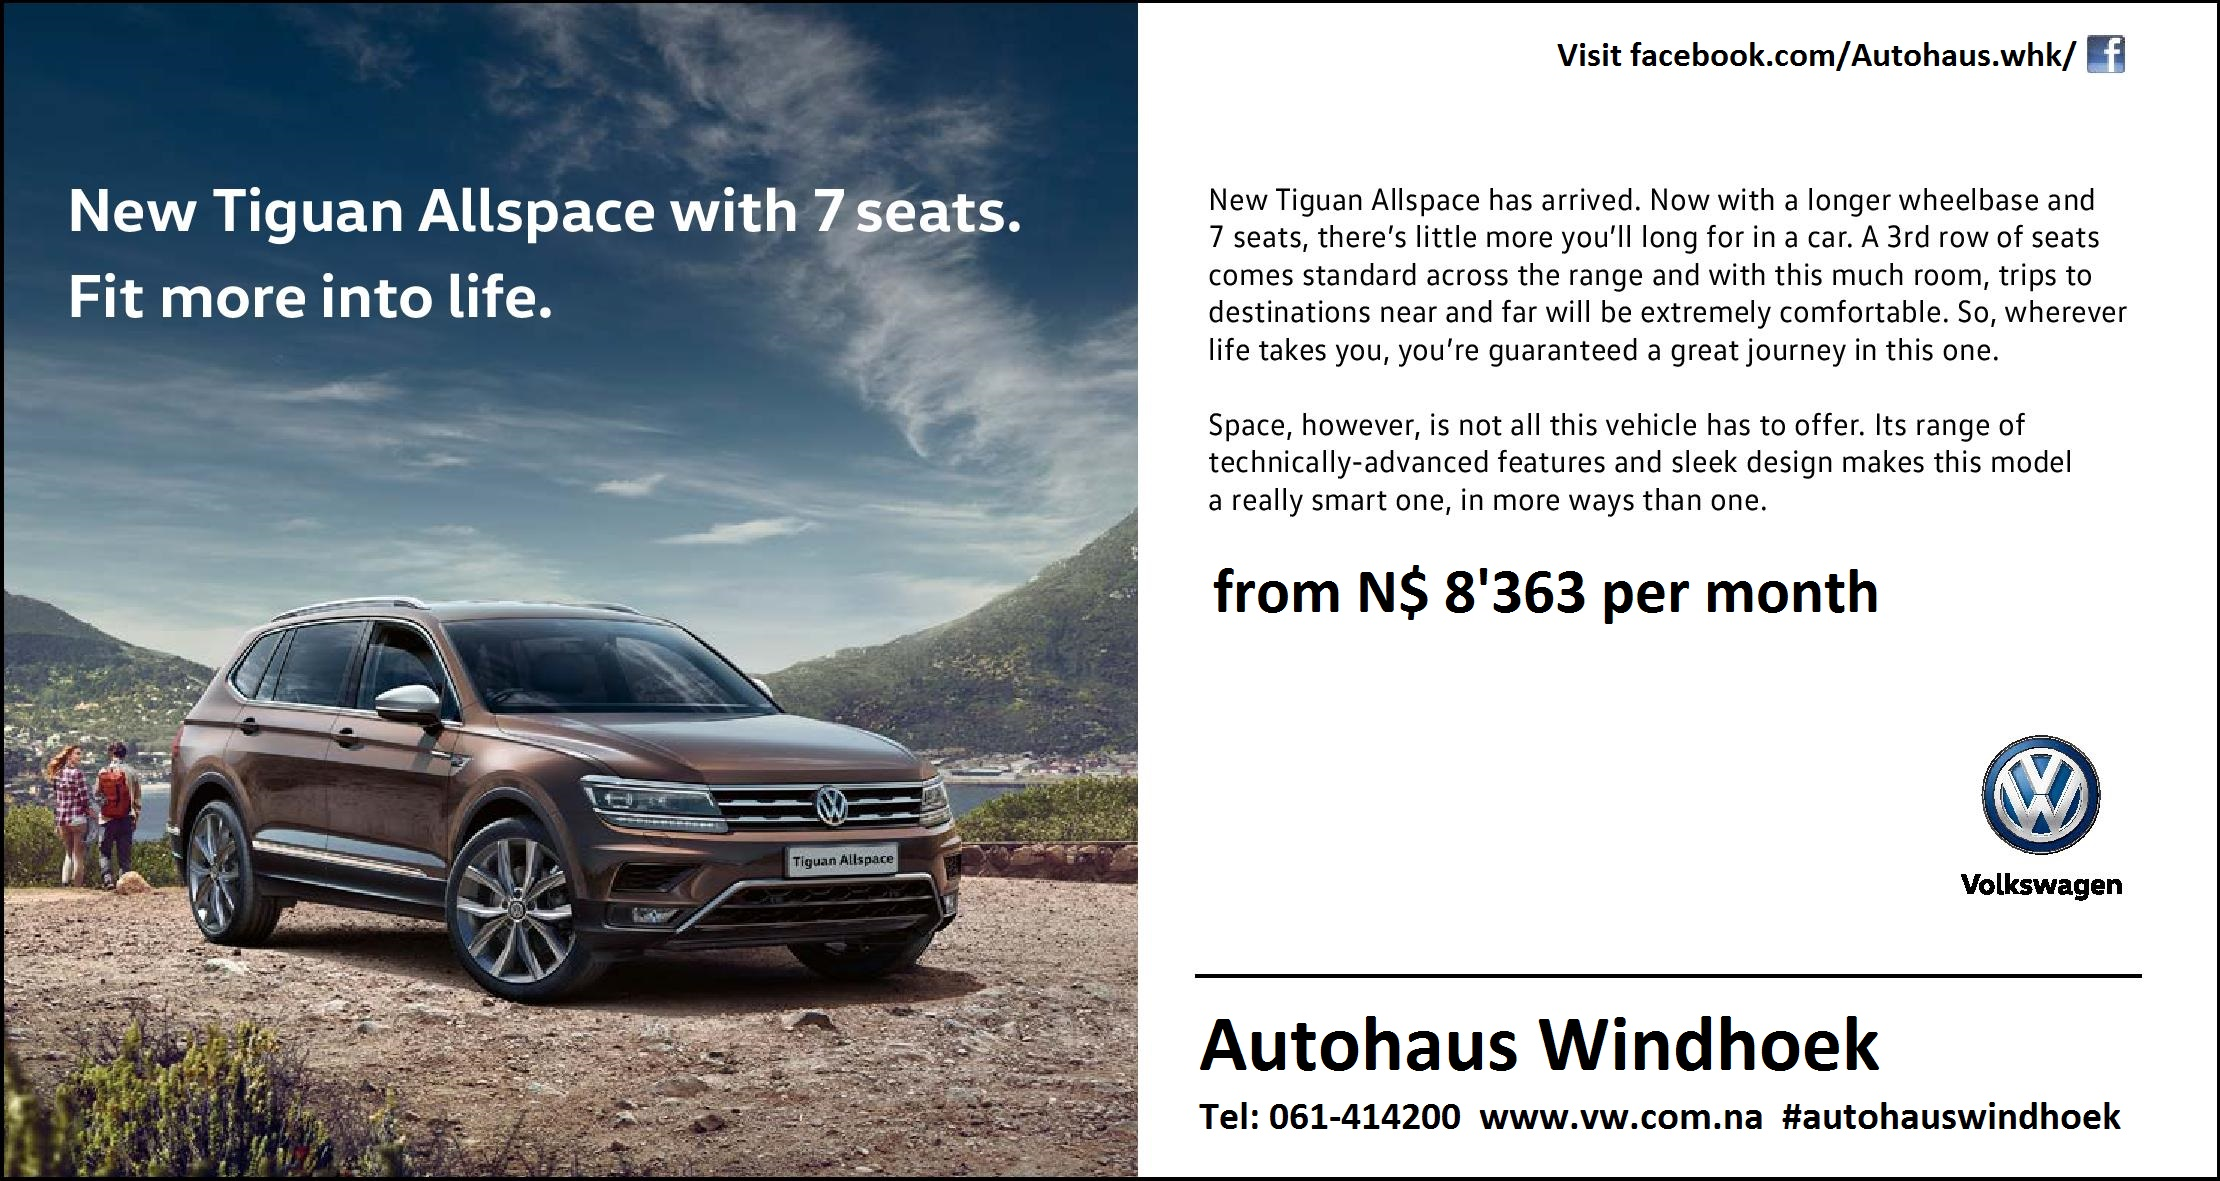 Tiguan Allspace with 7 seats